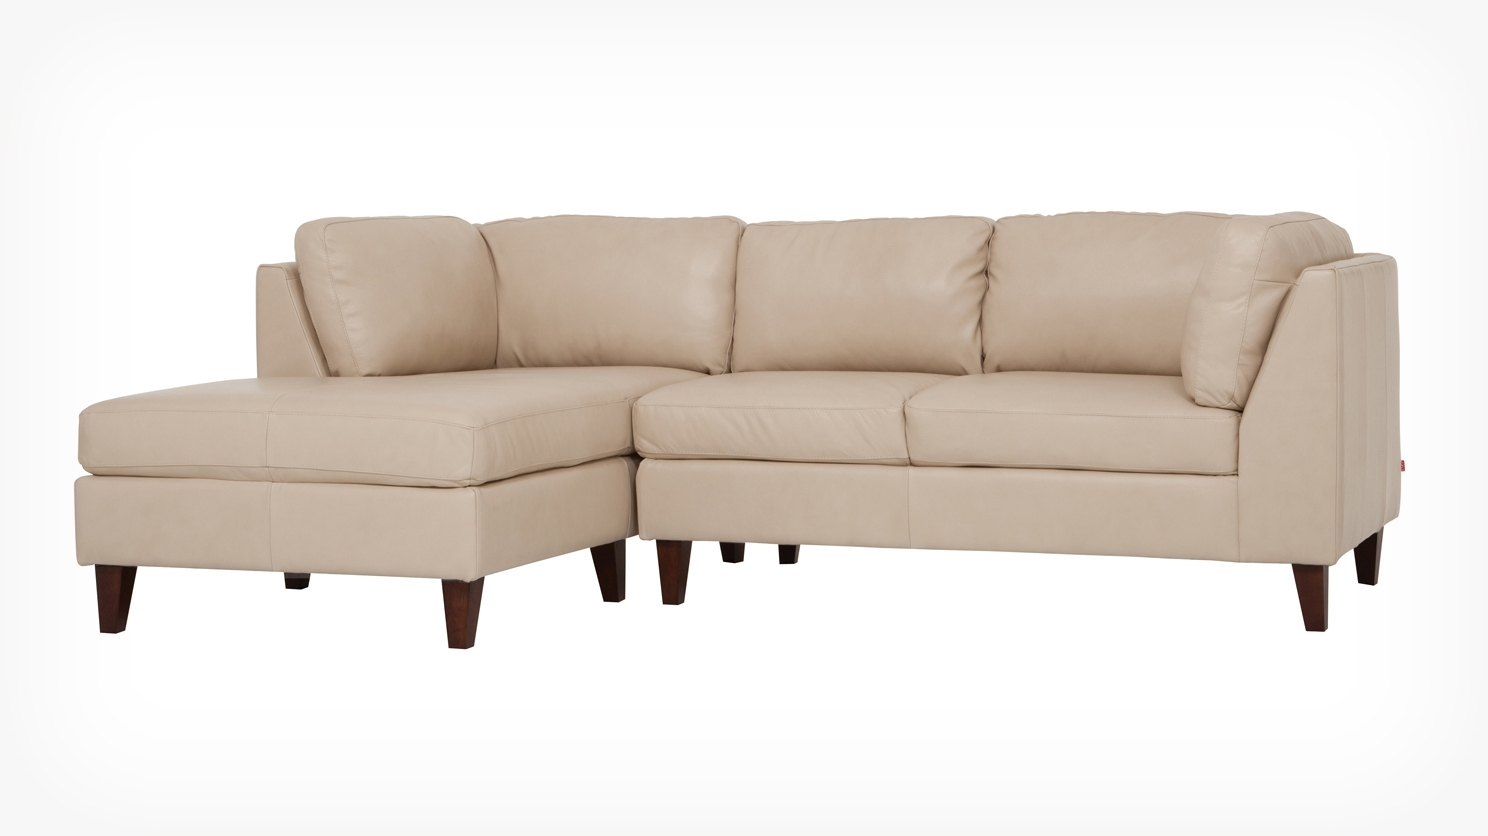 Eq3 | Salema 2 Piece Sectional Sofa With Chaise – Leather With Regard To Eq3 Sectional Sofas (View 10 of 10)